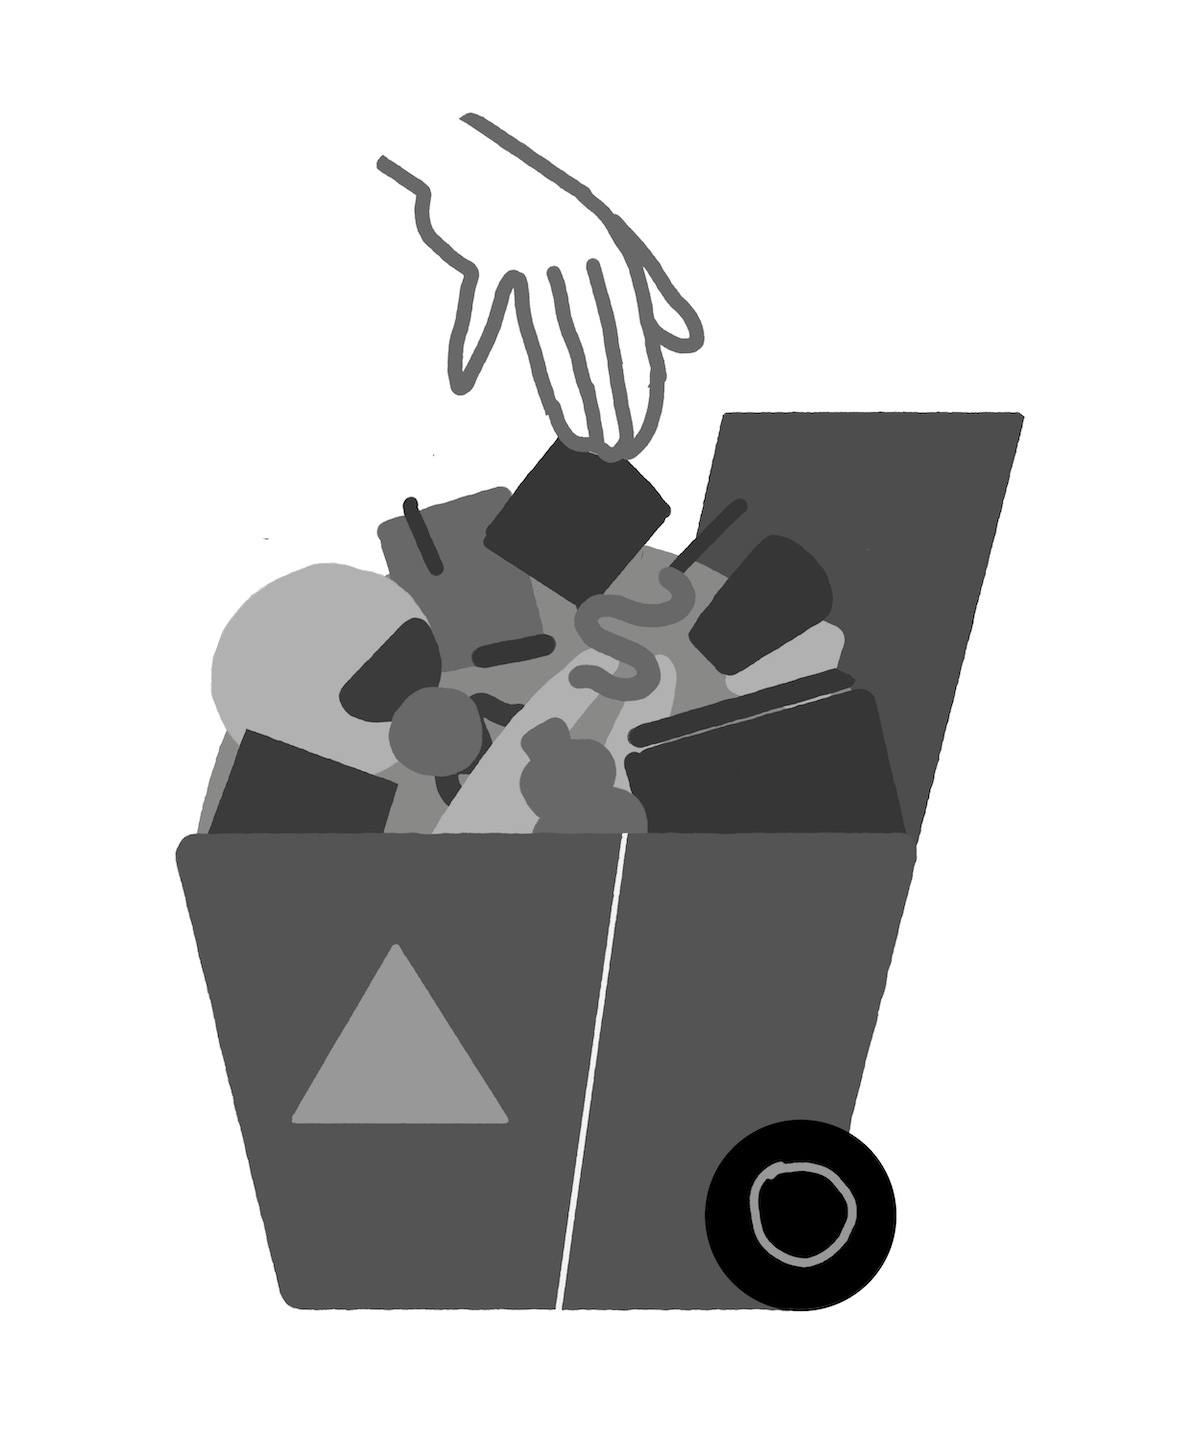 A sketch of all sorts of trash going into a recycling bin.